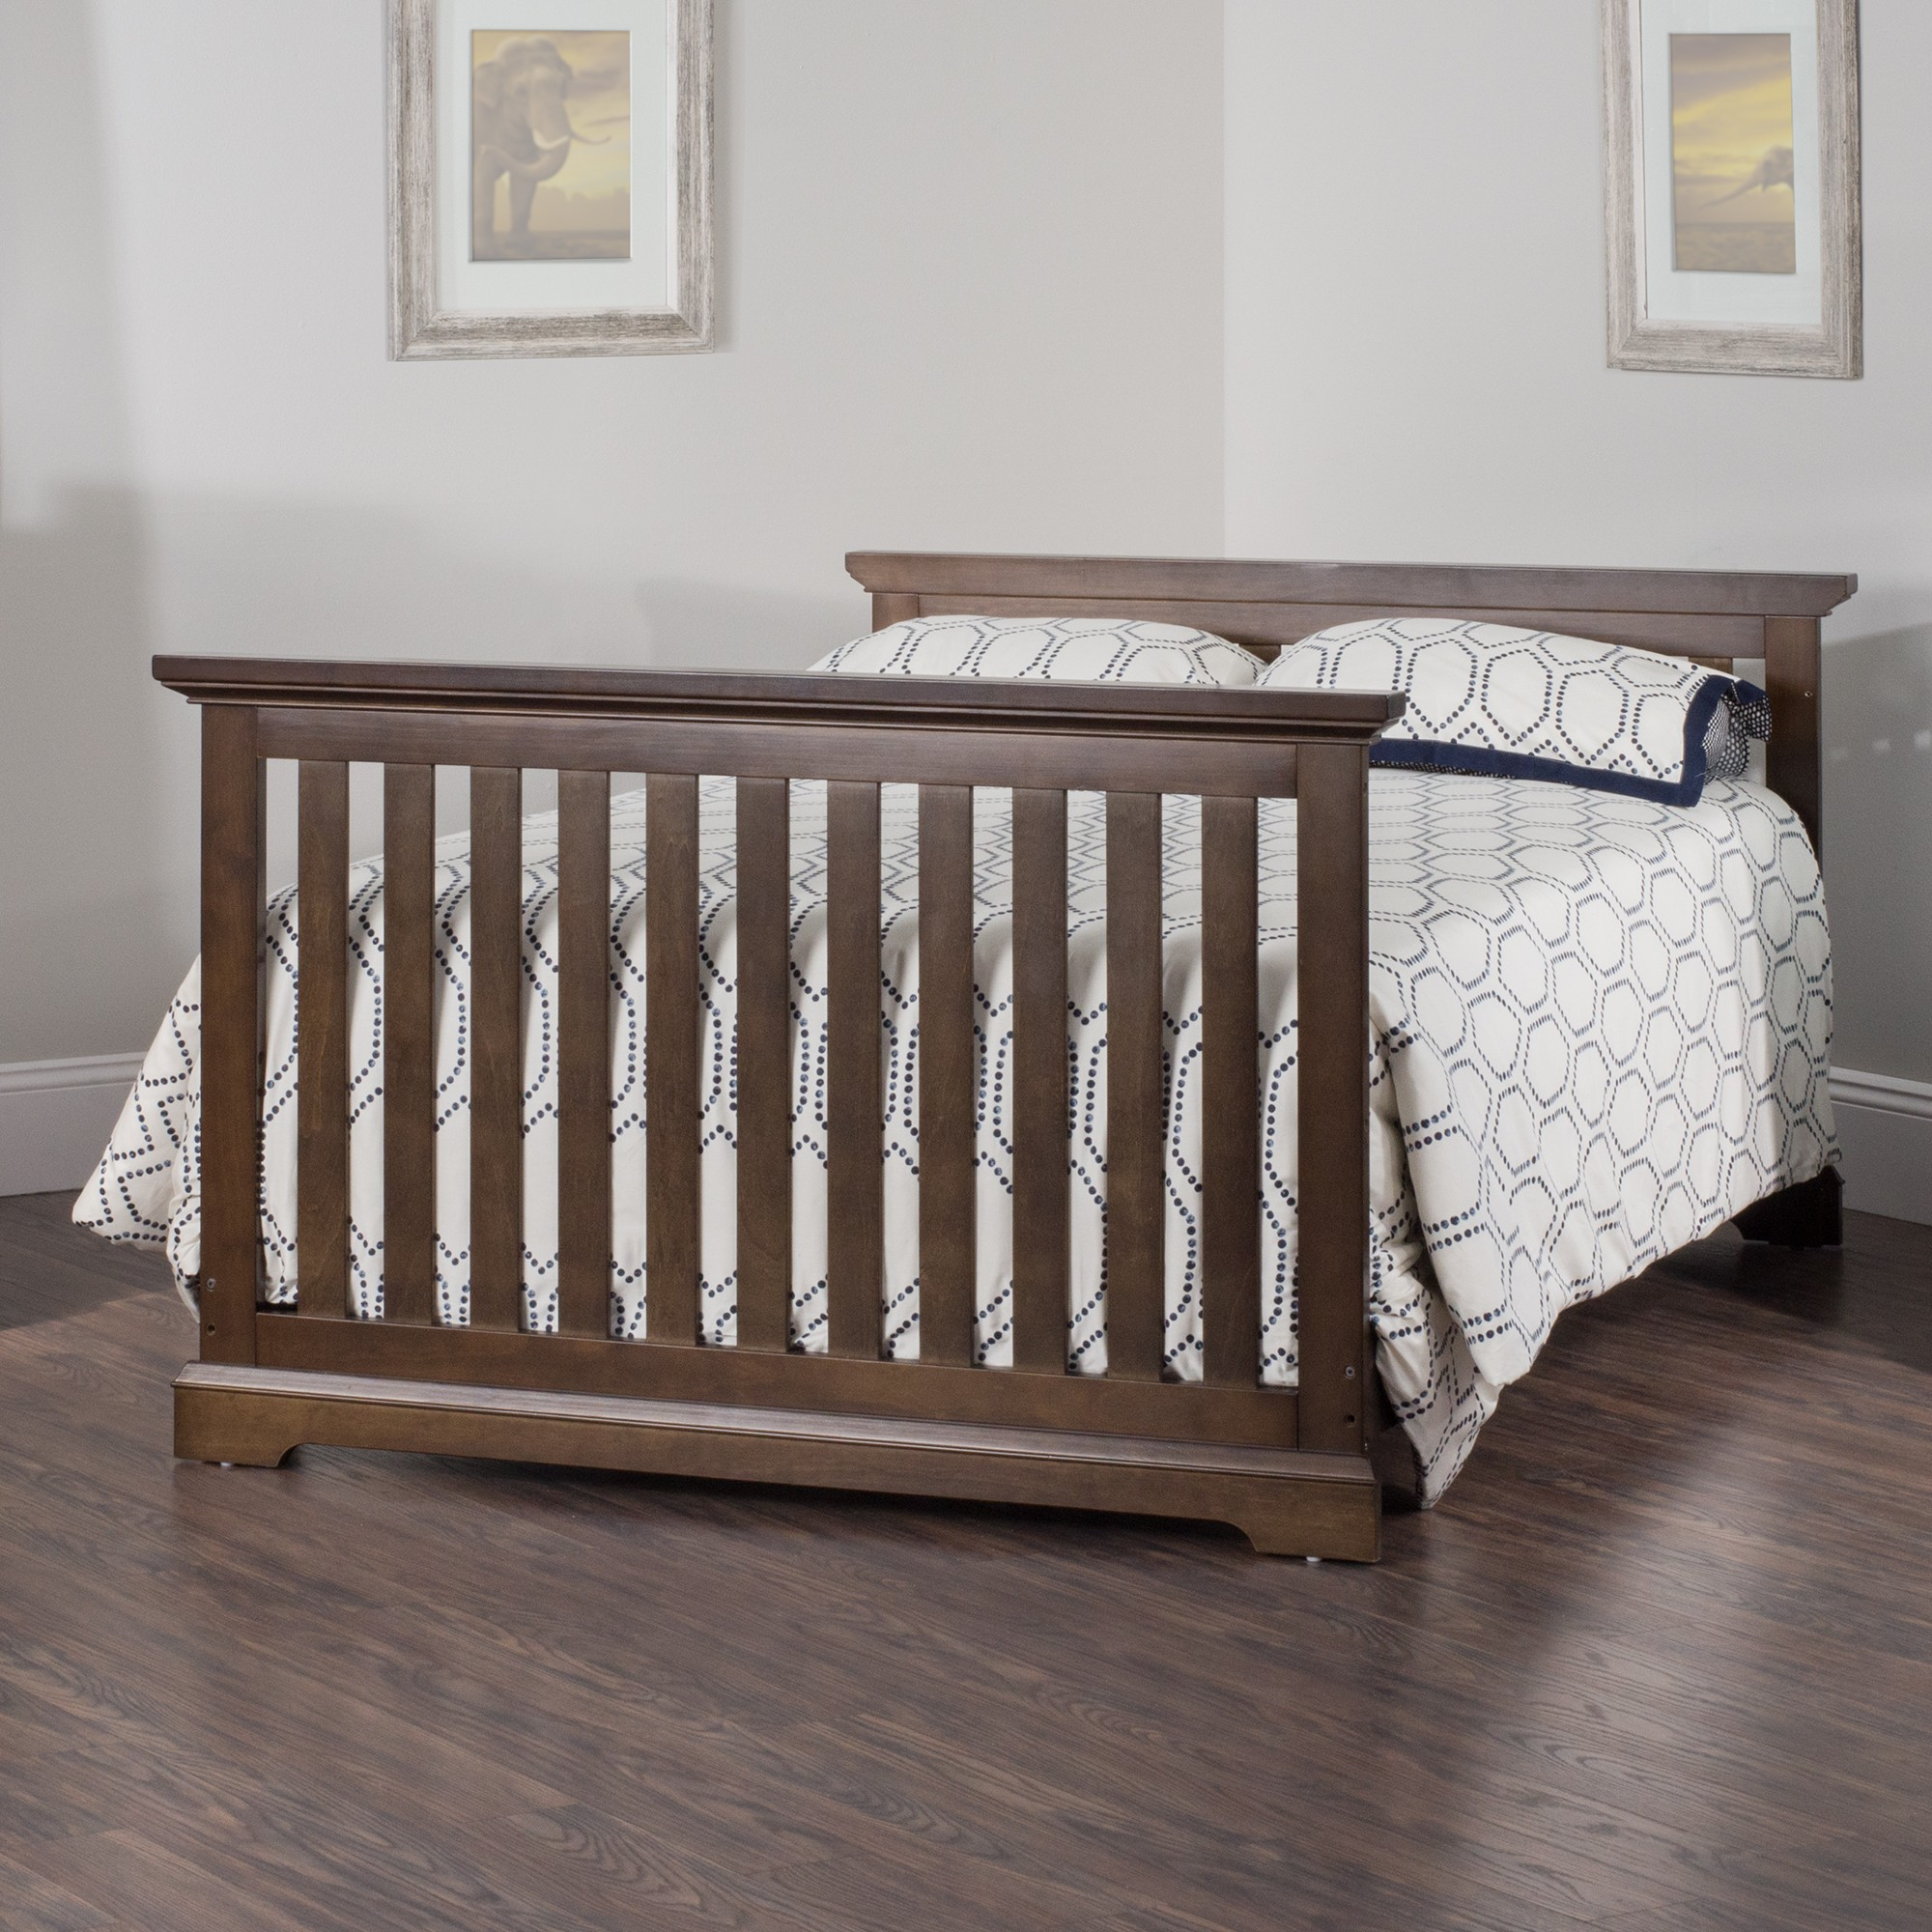 Kayden 4 in 1 convertible crib child craft for Child craft london crib instructions